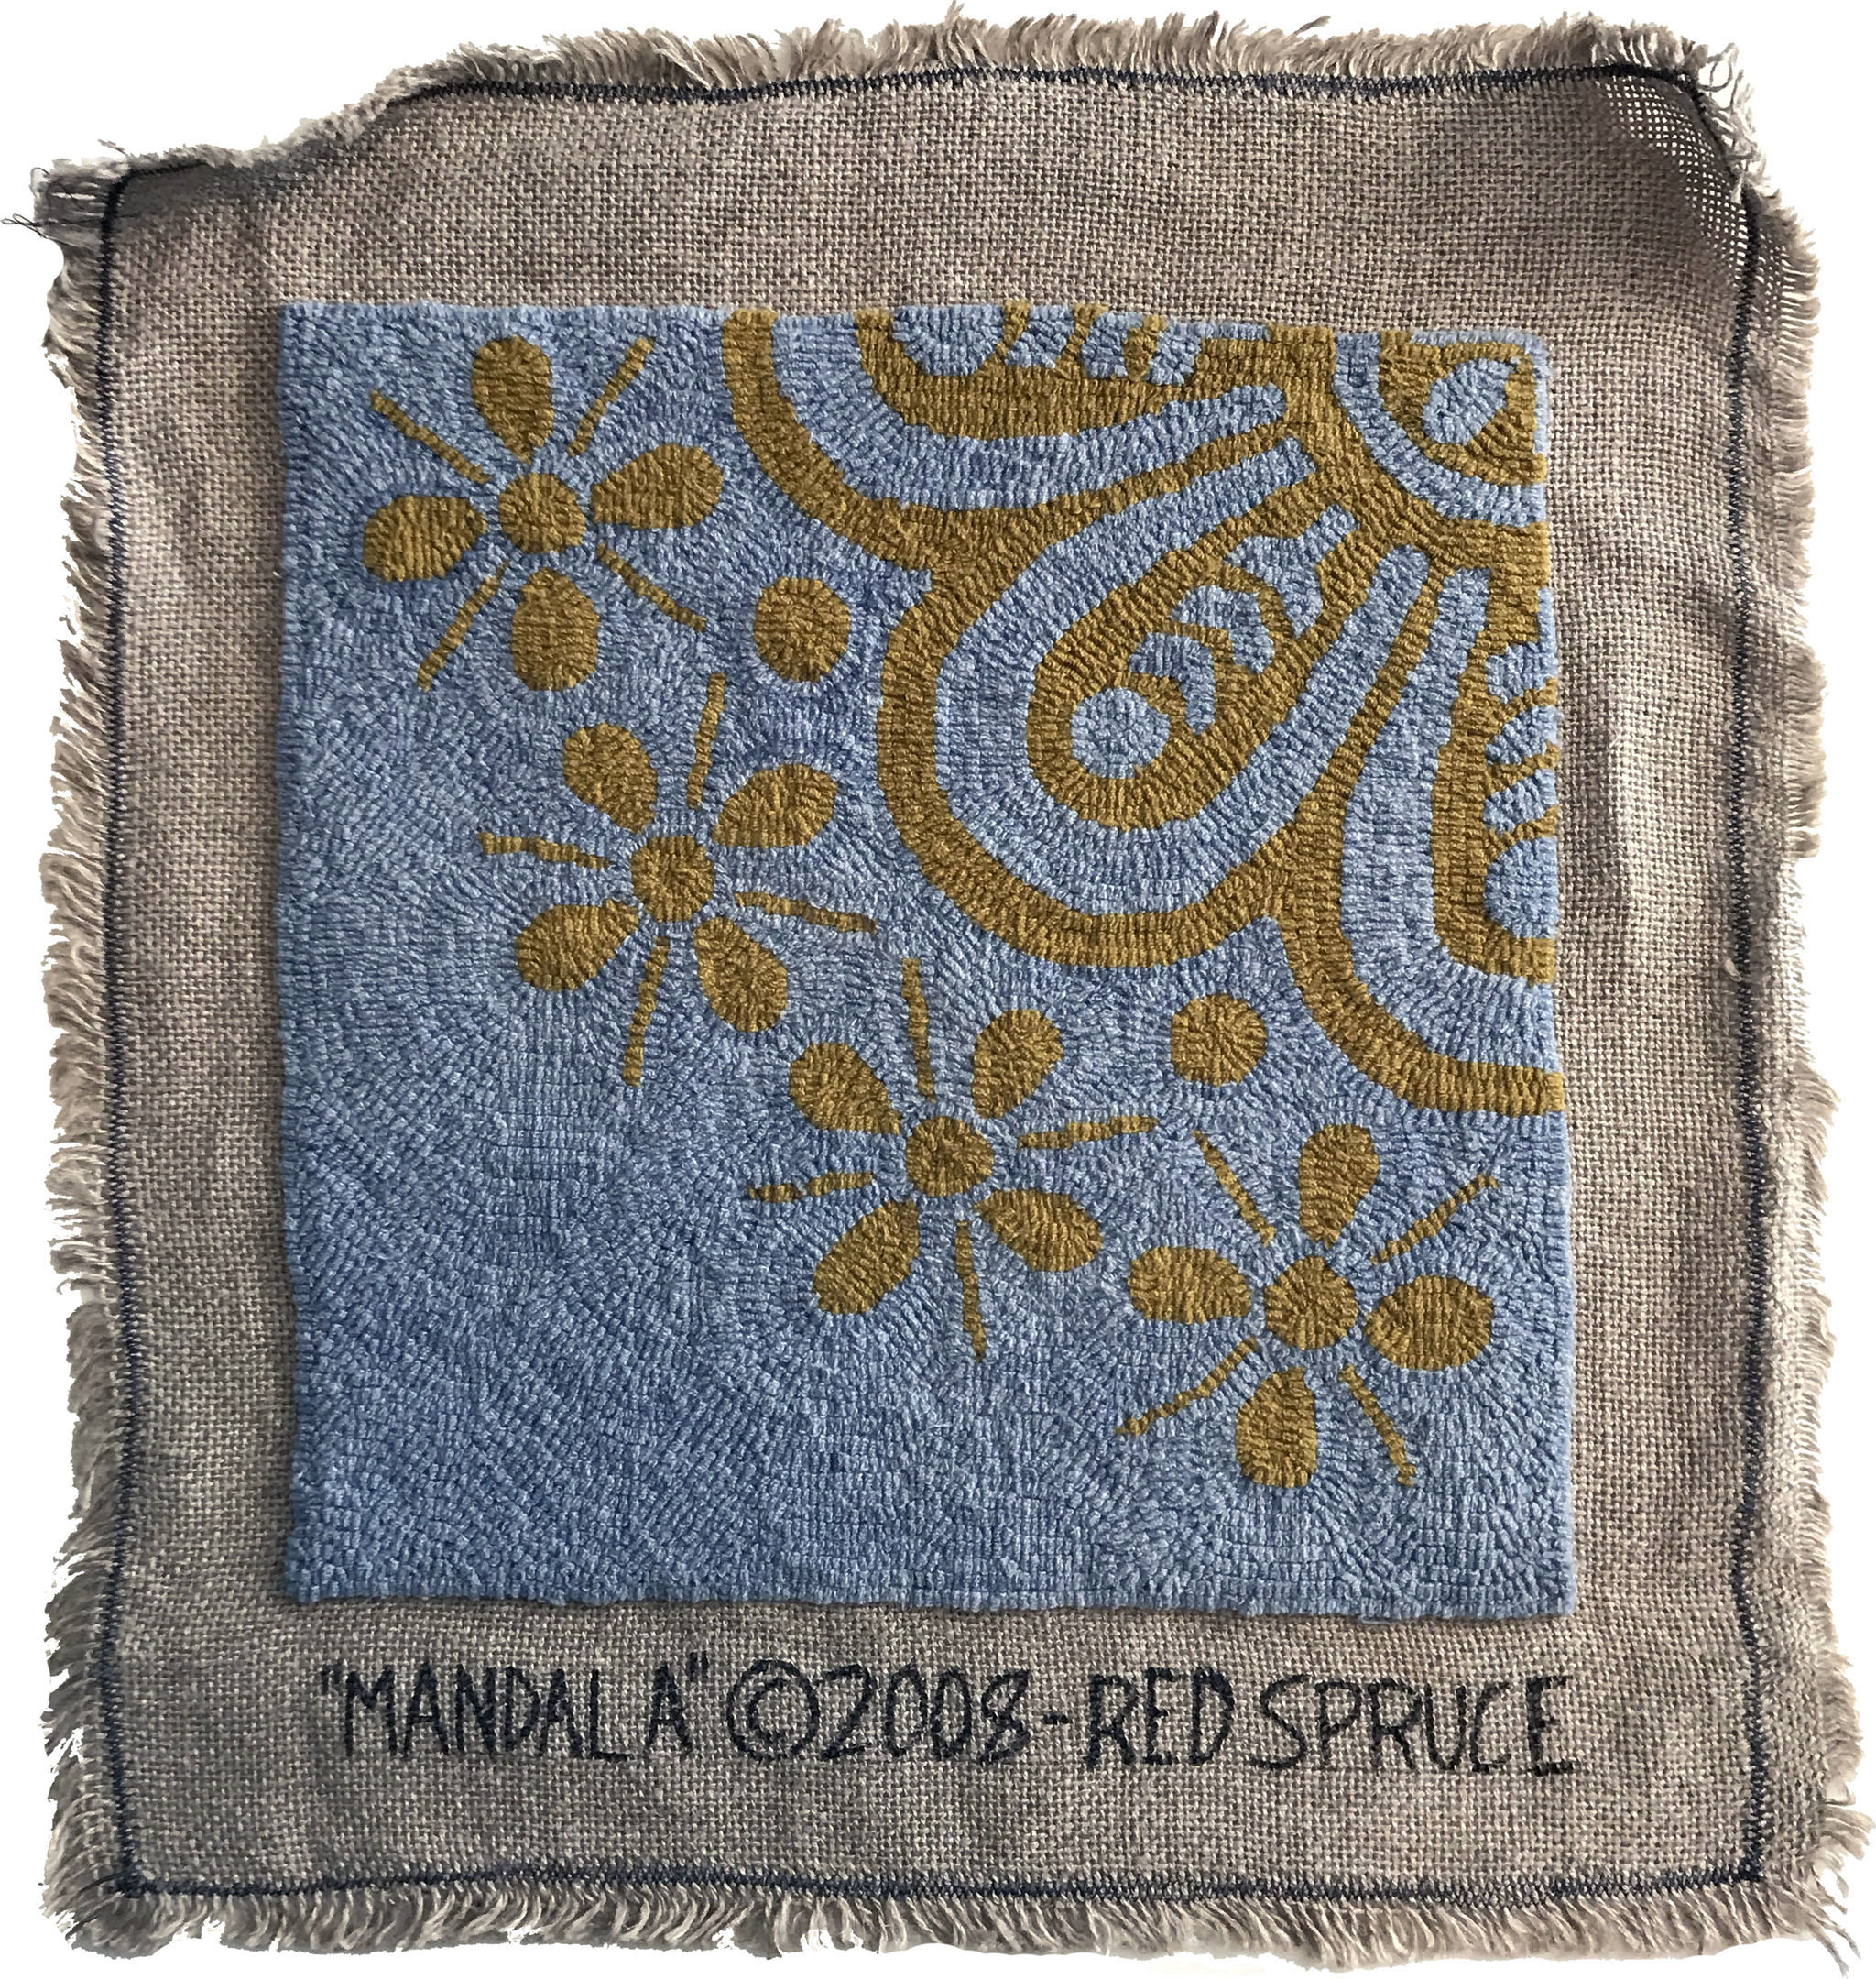 'Mandala' sample shown in the studio quality by Red Spruce. | Image: The Ruggist file.